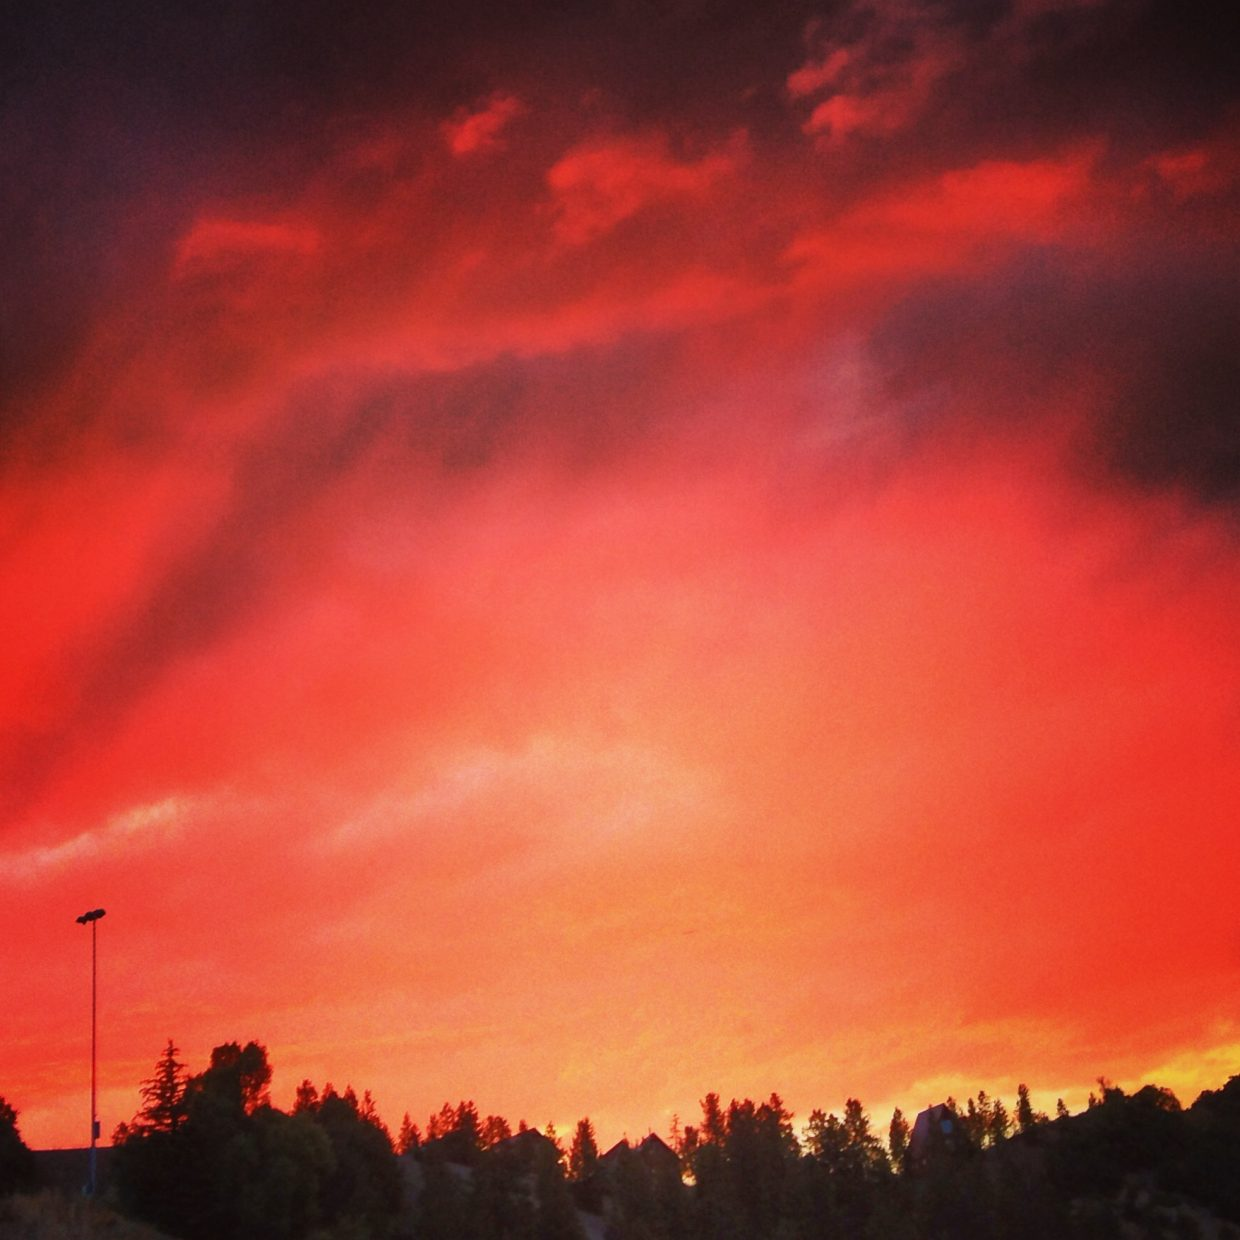 Red at night, Sailors delight. Submitted by: Michelle Mackey